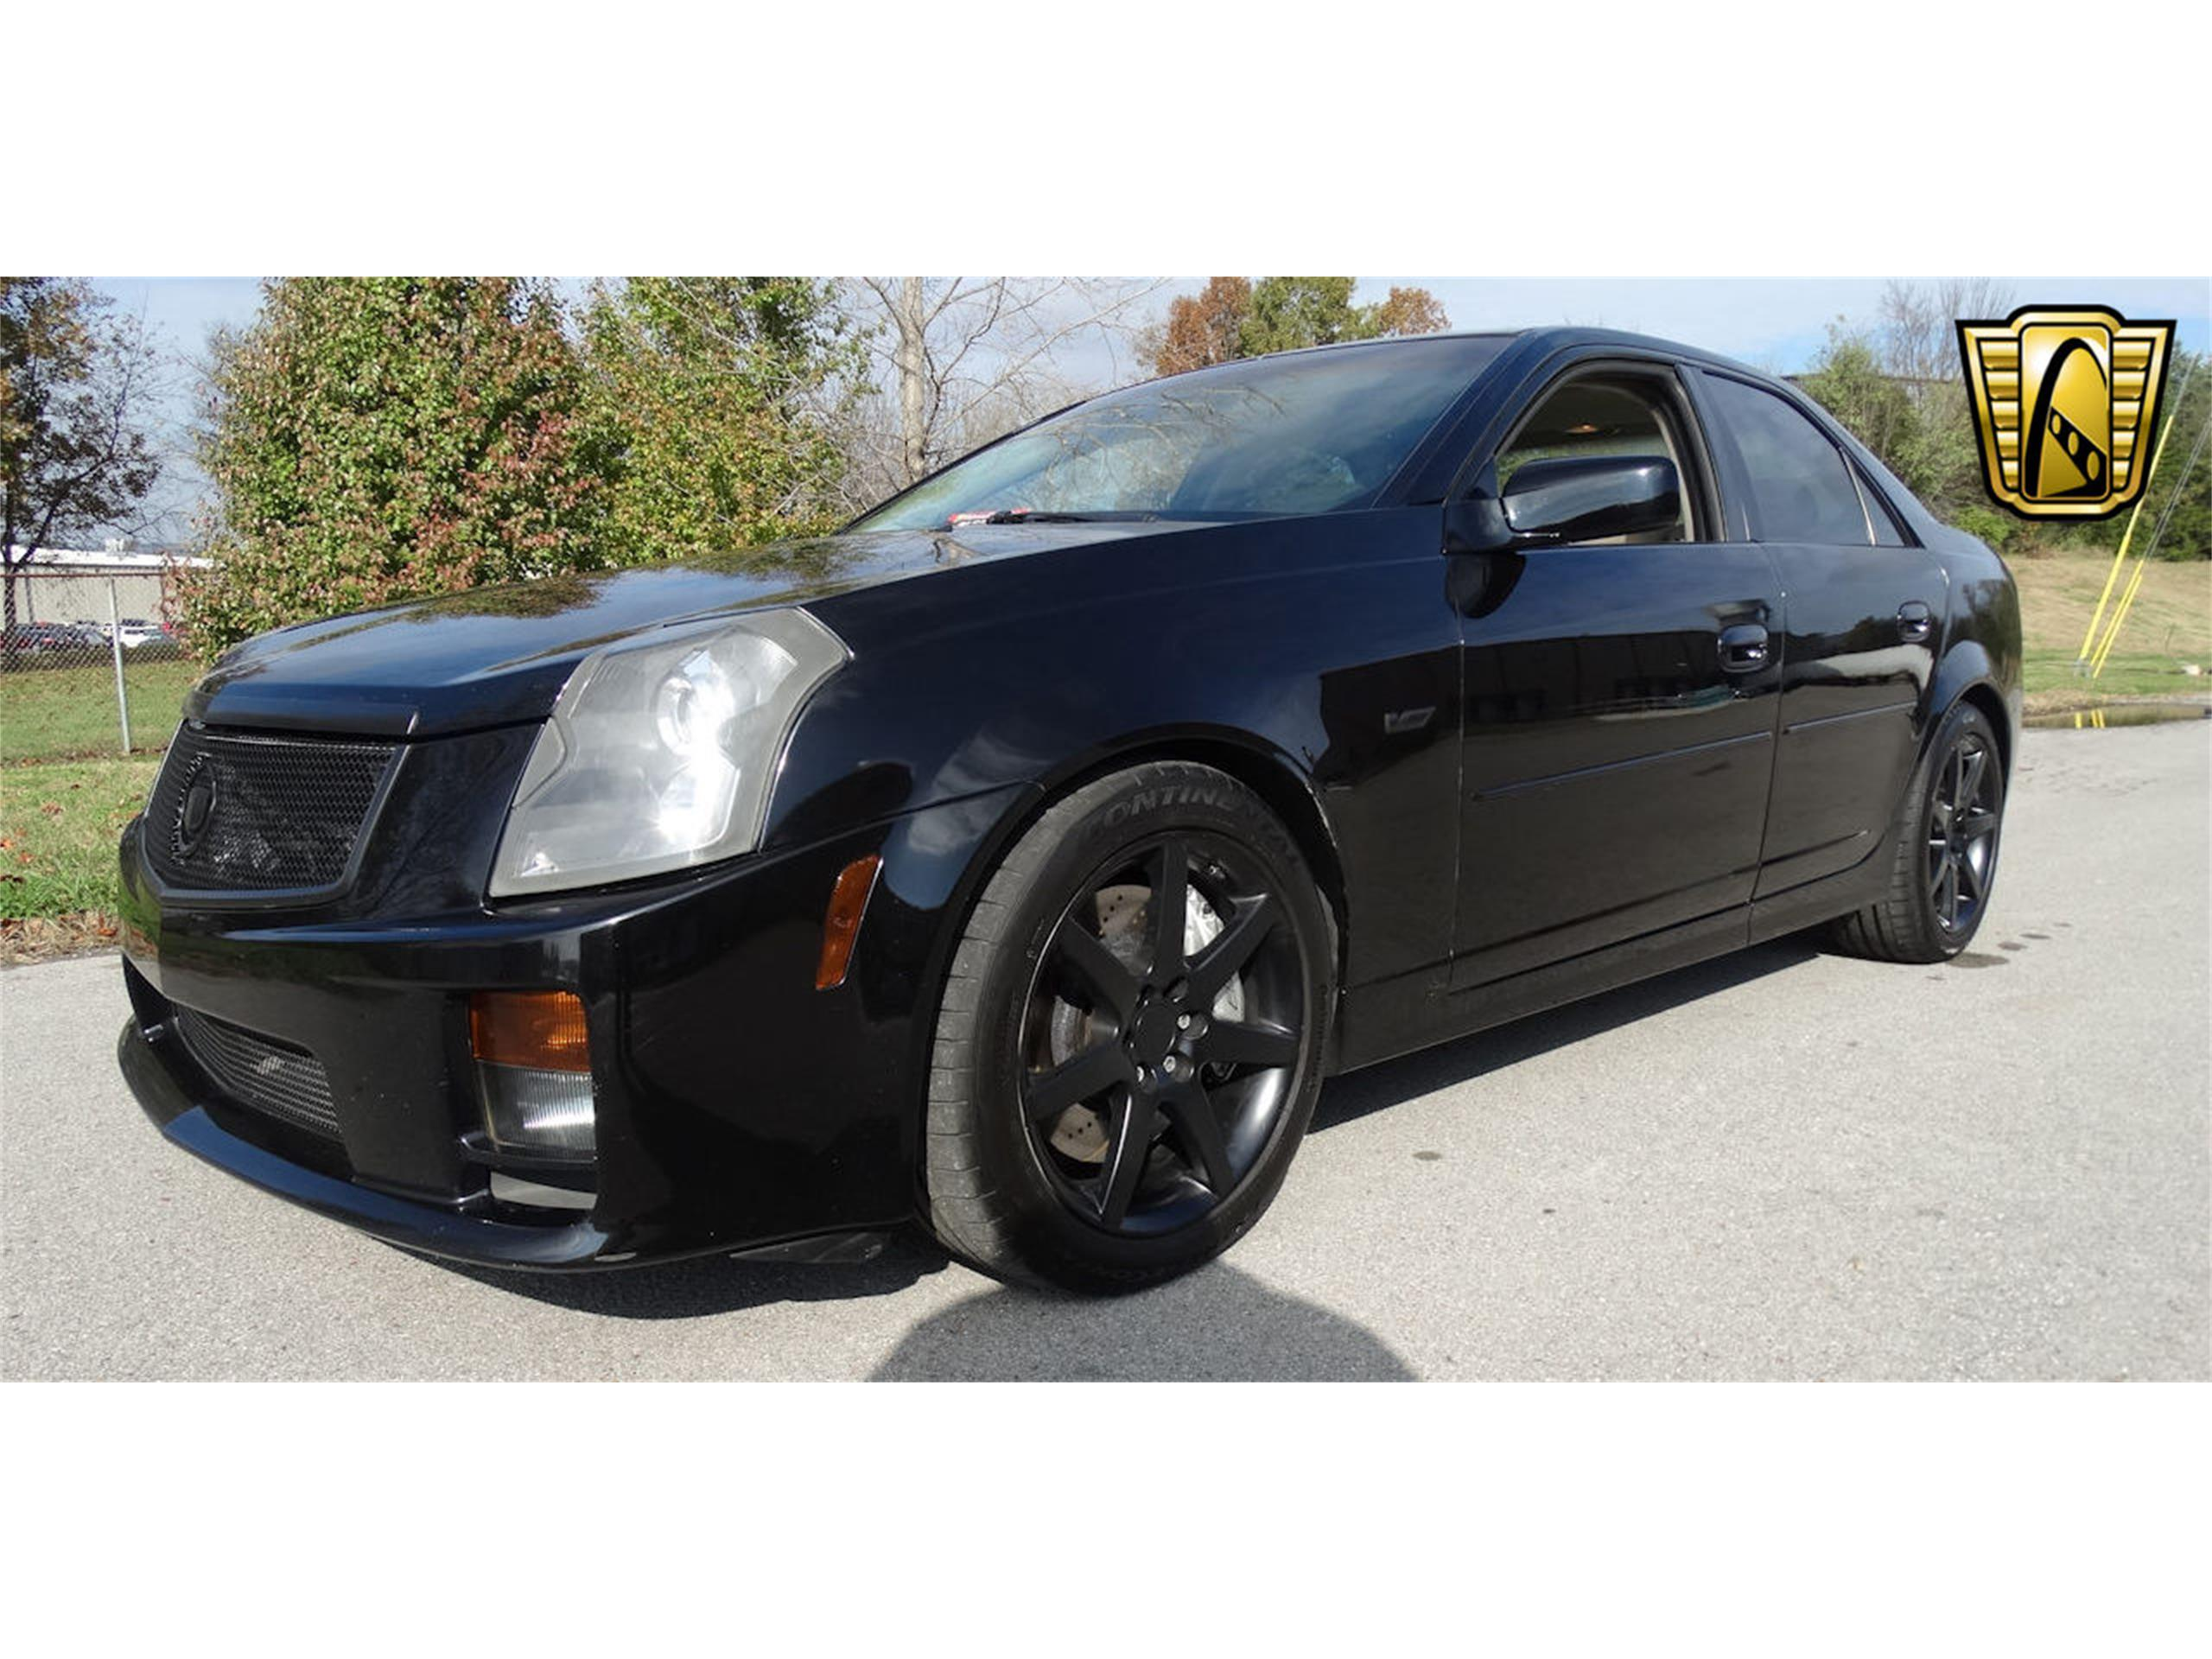 2005 cadillac sts owners manual online wiring library 2005 cadillac cts for sale classiccars com cc 1042572 rh classiccars com 2005 cadillac cts 2005 cadillac sts problems publicscrutiny Choice Image